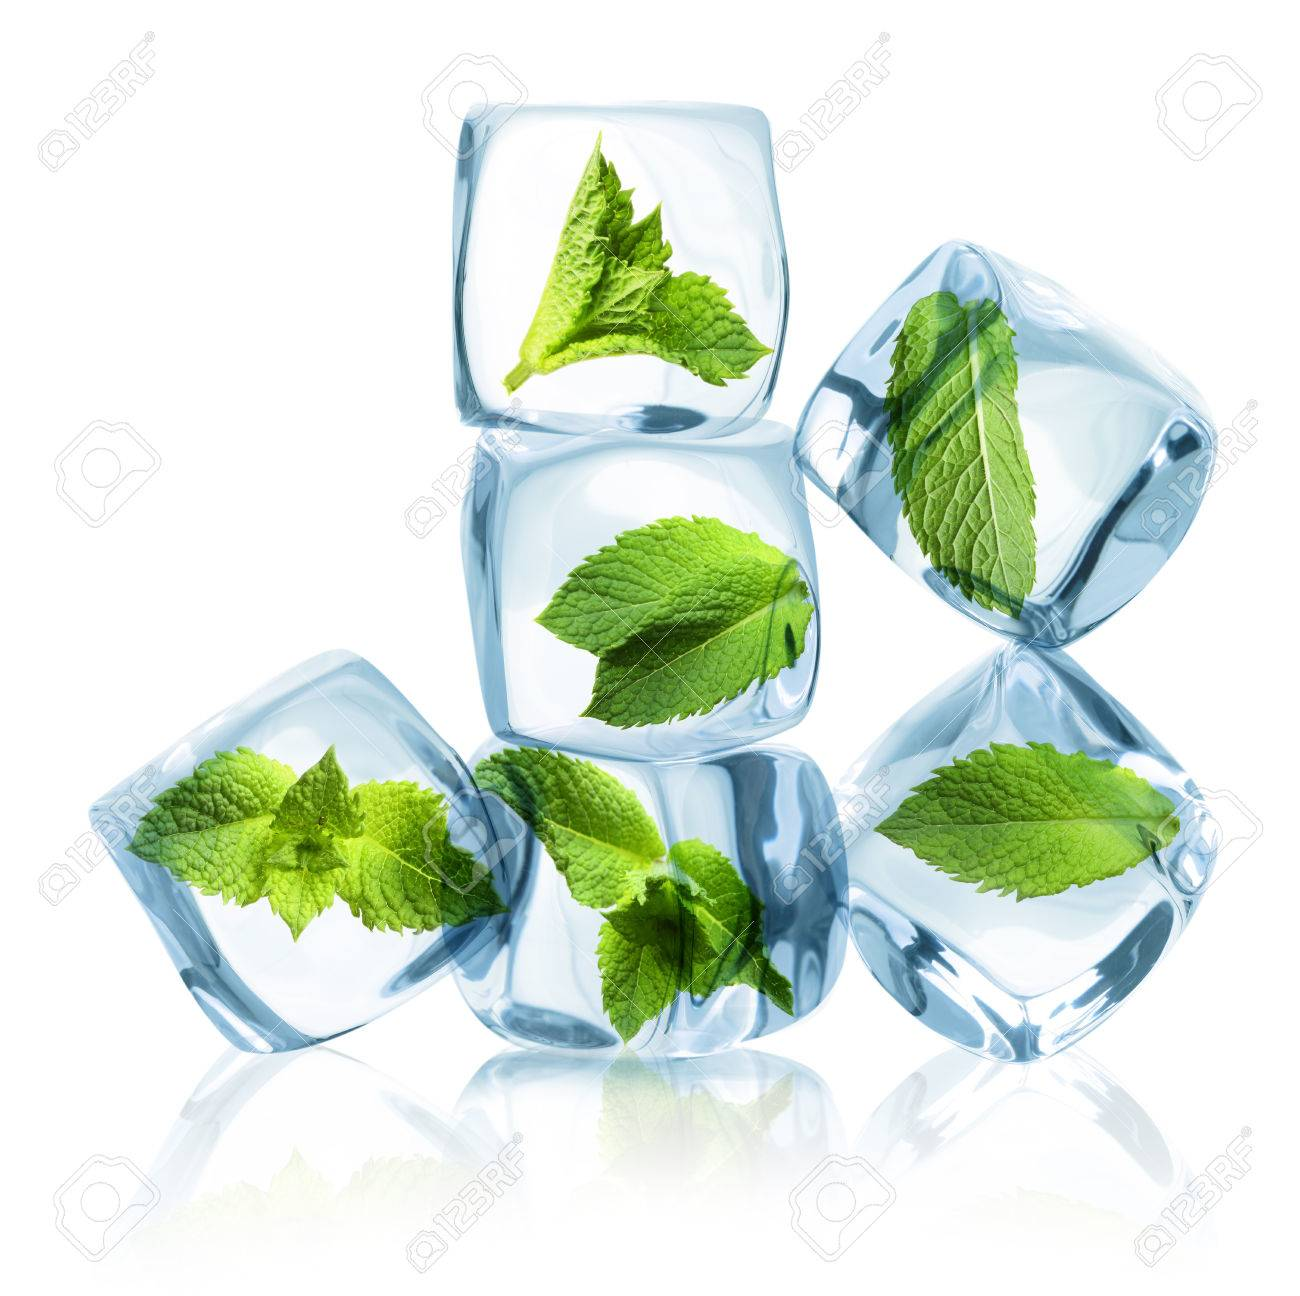 Ice cubes with green mint leaves isolated on white background. - 61201301